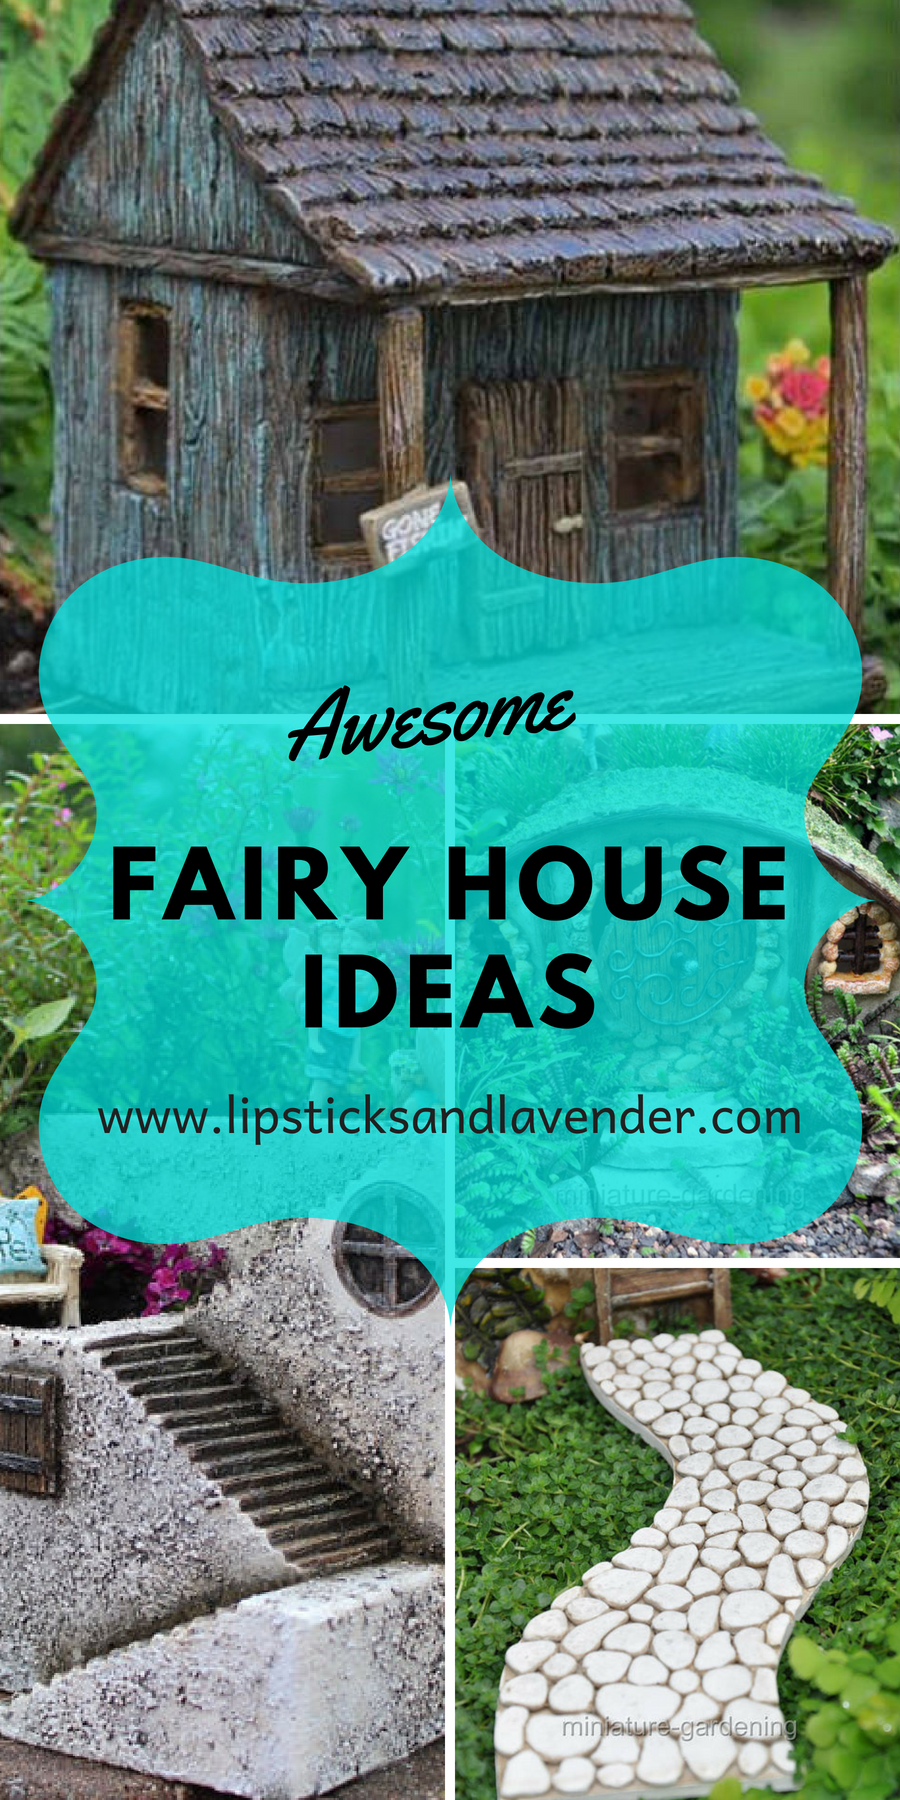 Are You A Fan Of Fairy Gardens Check Out This Post For 21 Awesome